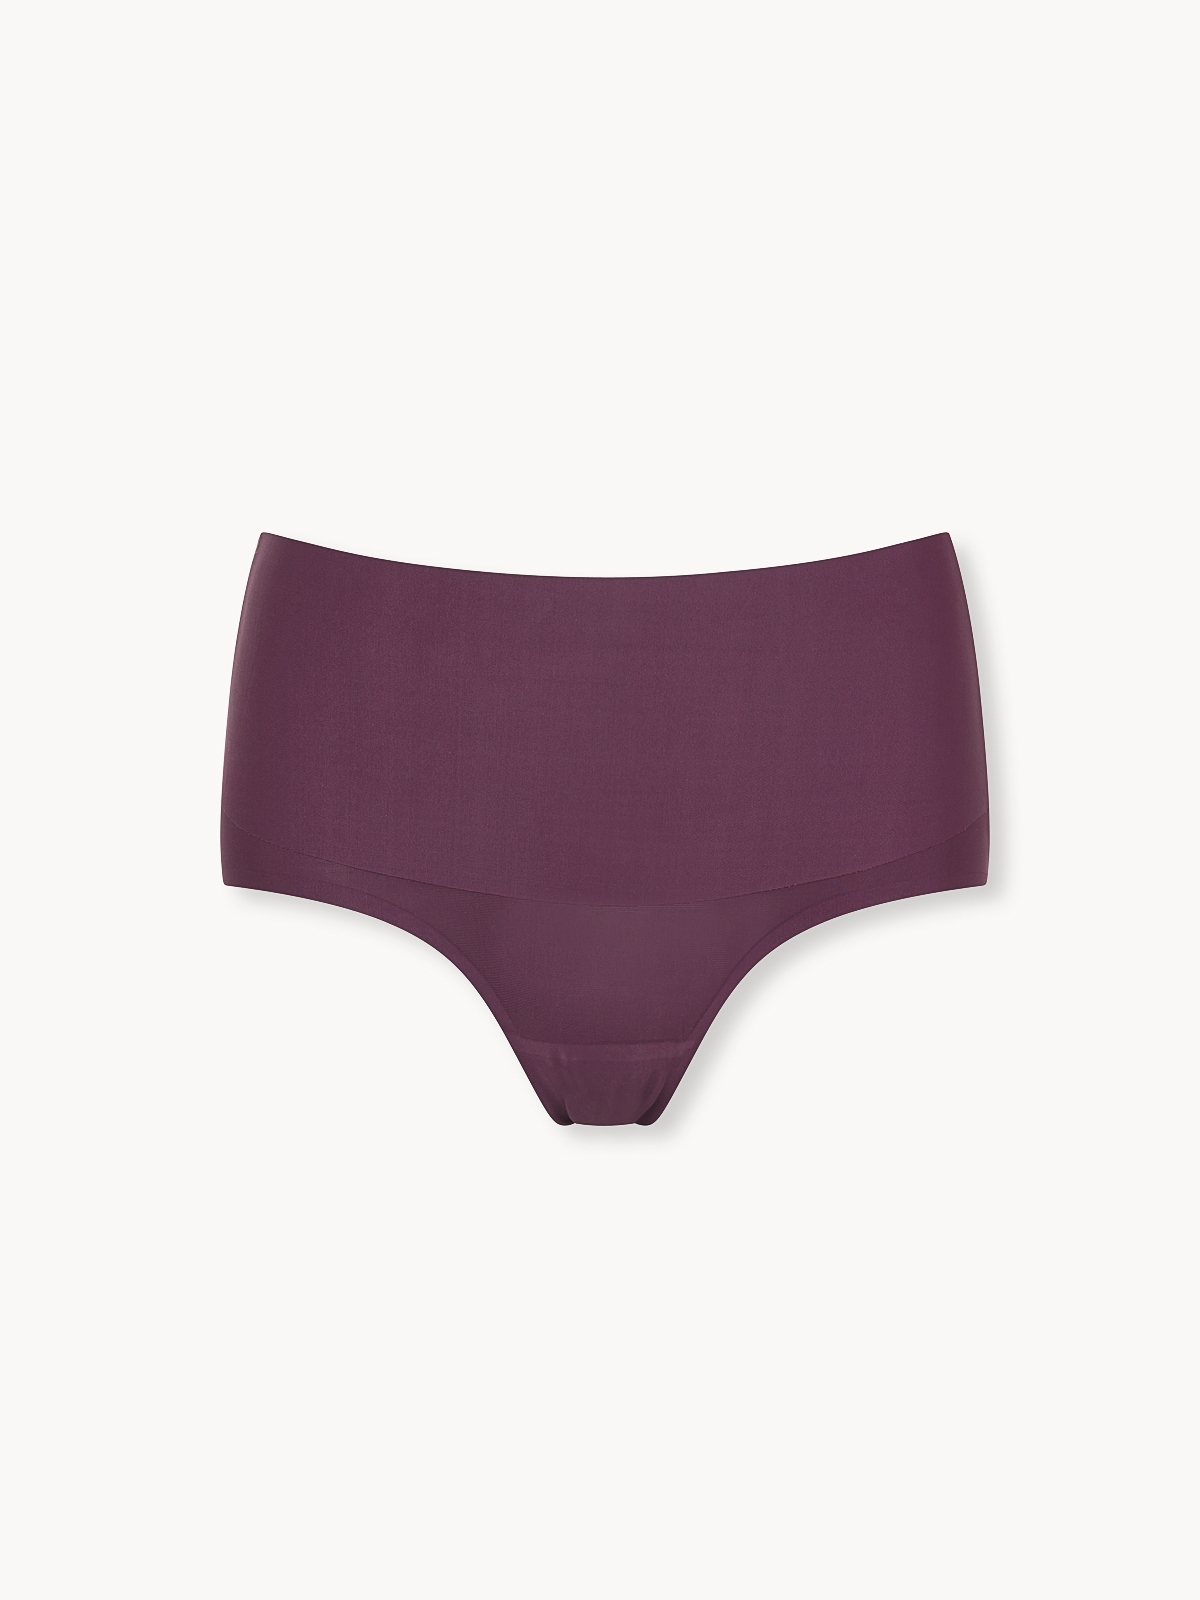 Up and Under TGIF Panty Purple